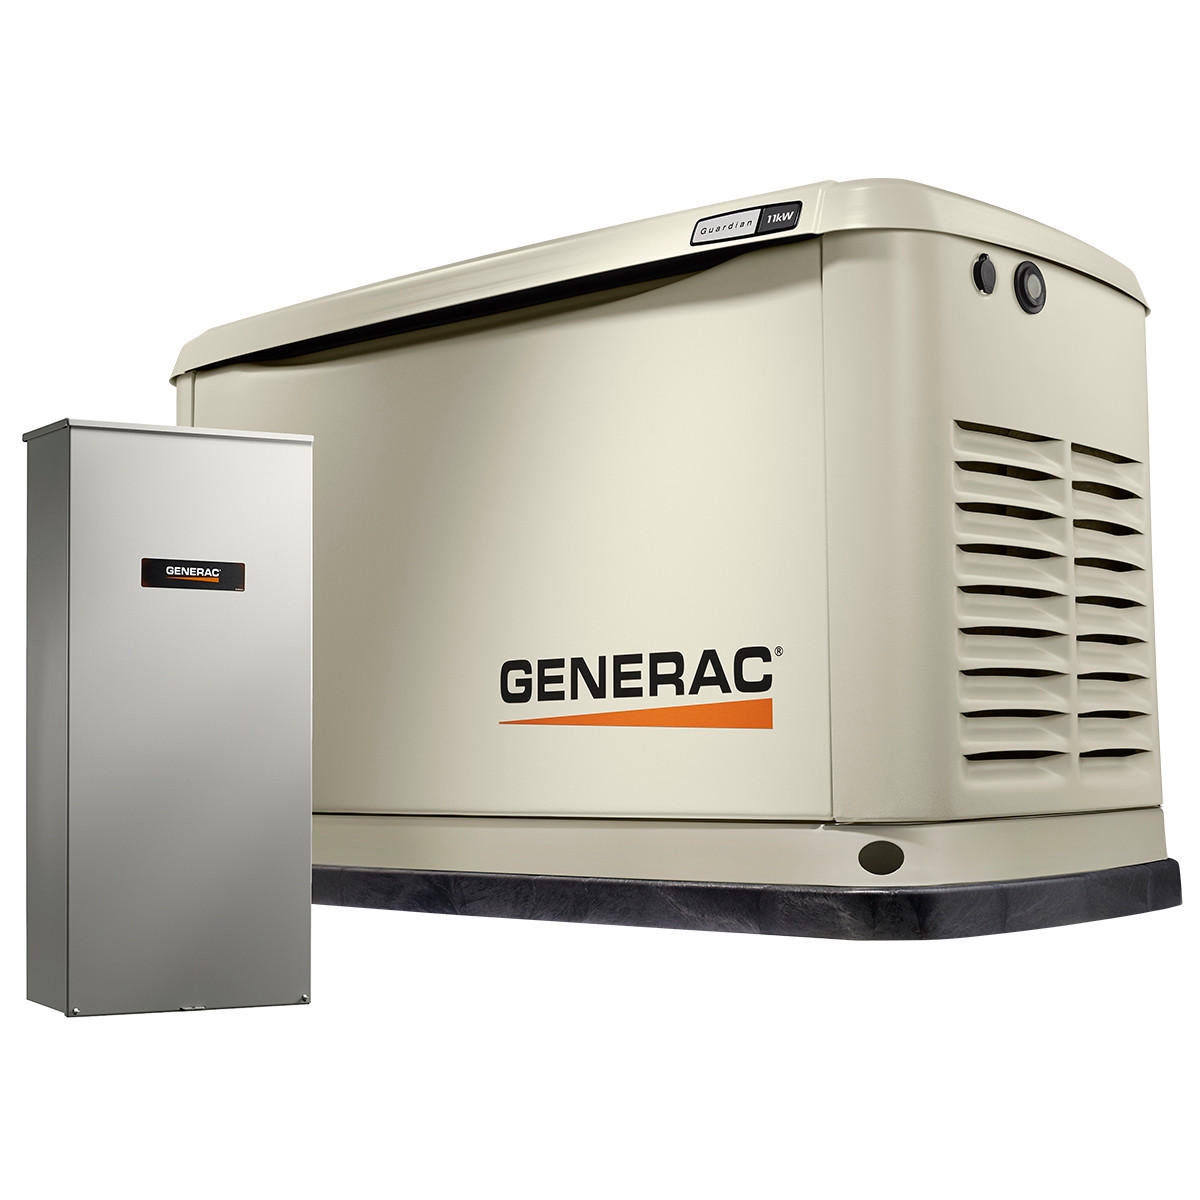 generac guardian 7032 11kw generator with wi fi 100a 16 circuit transfer switch [ 1200 x 1200 Pixel ]